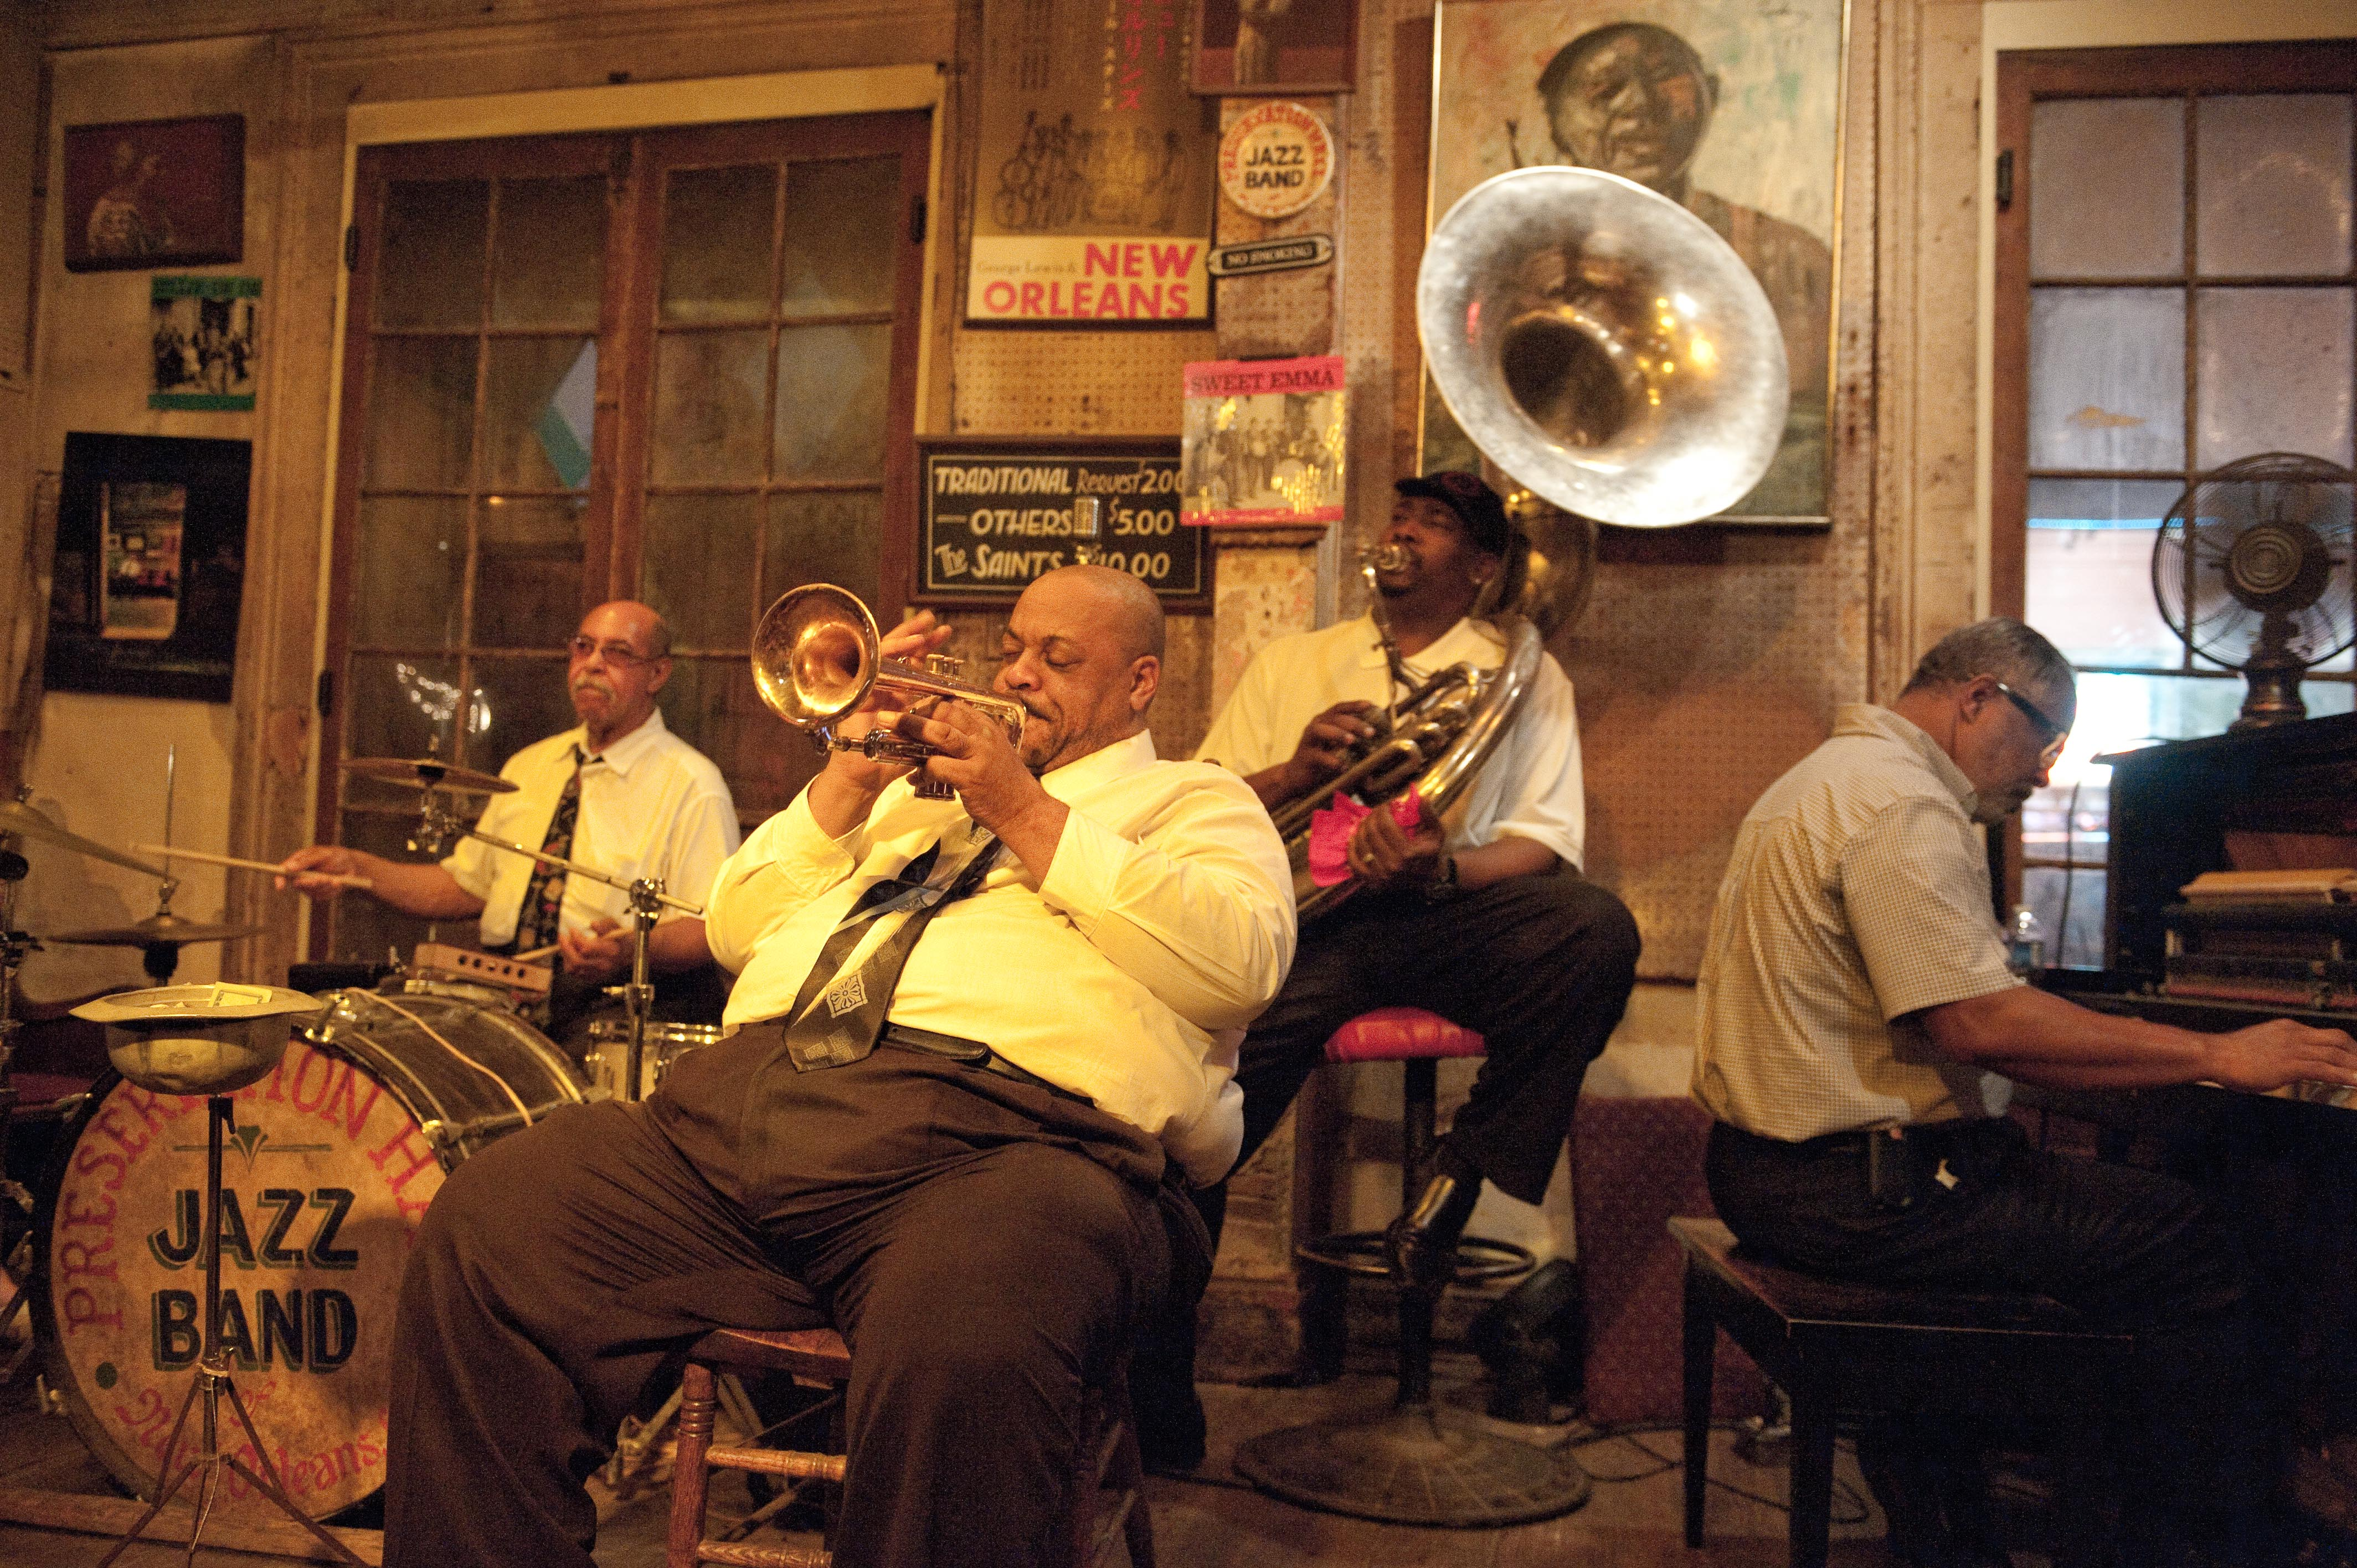 report on new orleans jazz band Jazzthe sound that put new orleans on the map, musically speaking it's a distinctive sound--not big-band swing, with horns creating harmony.